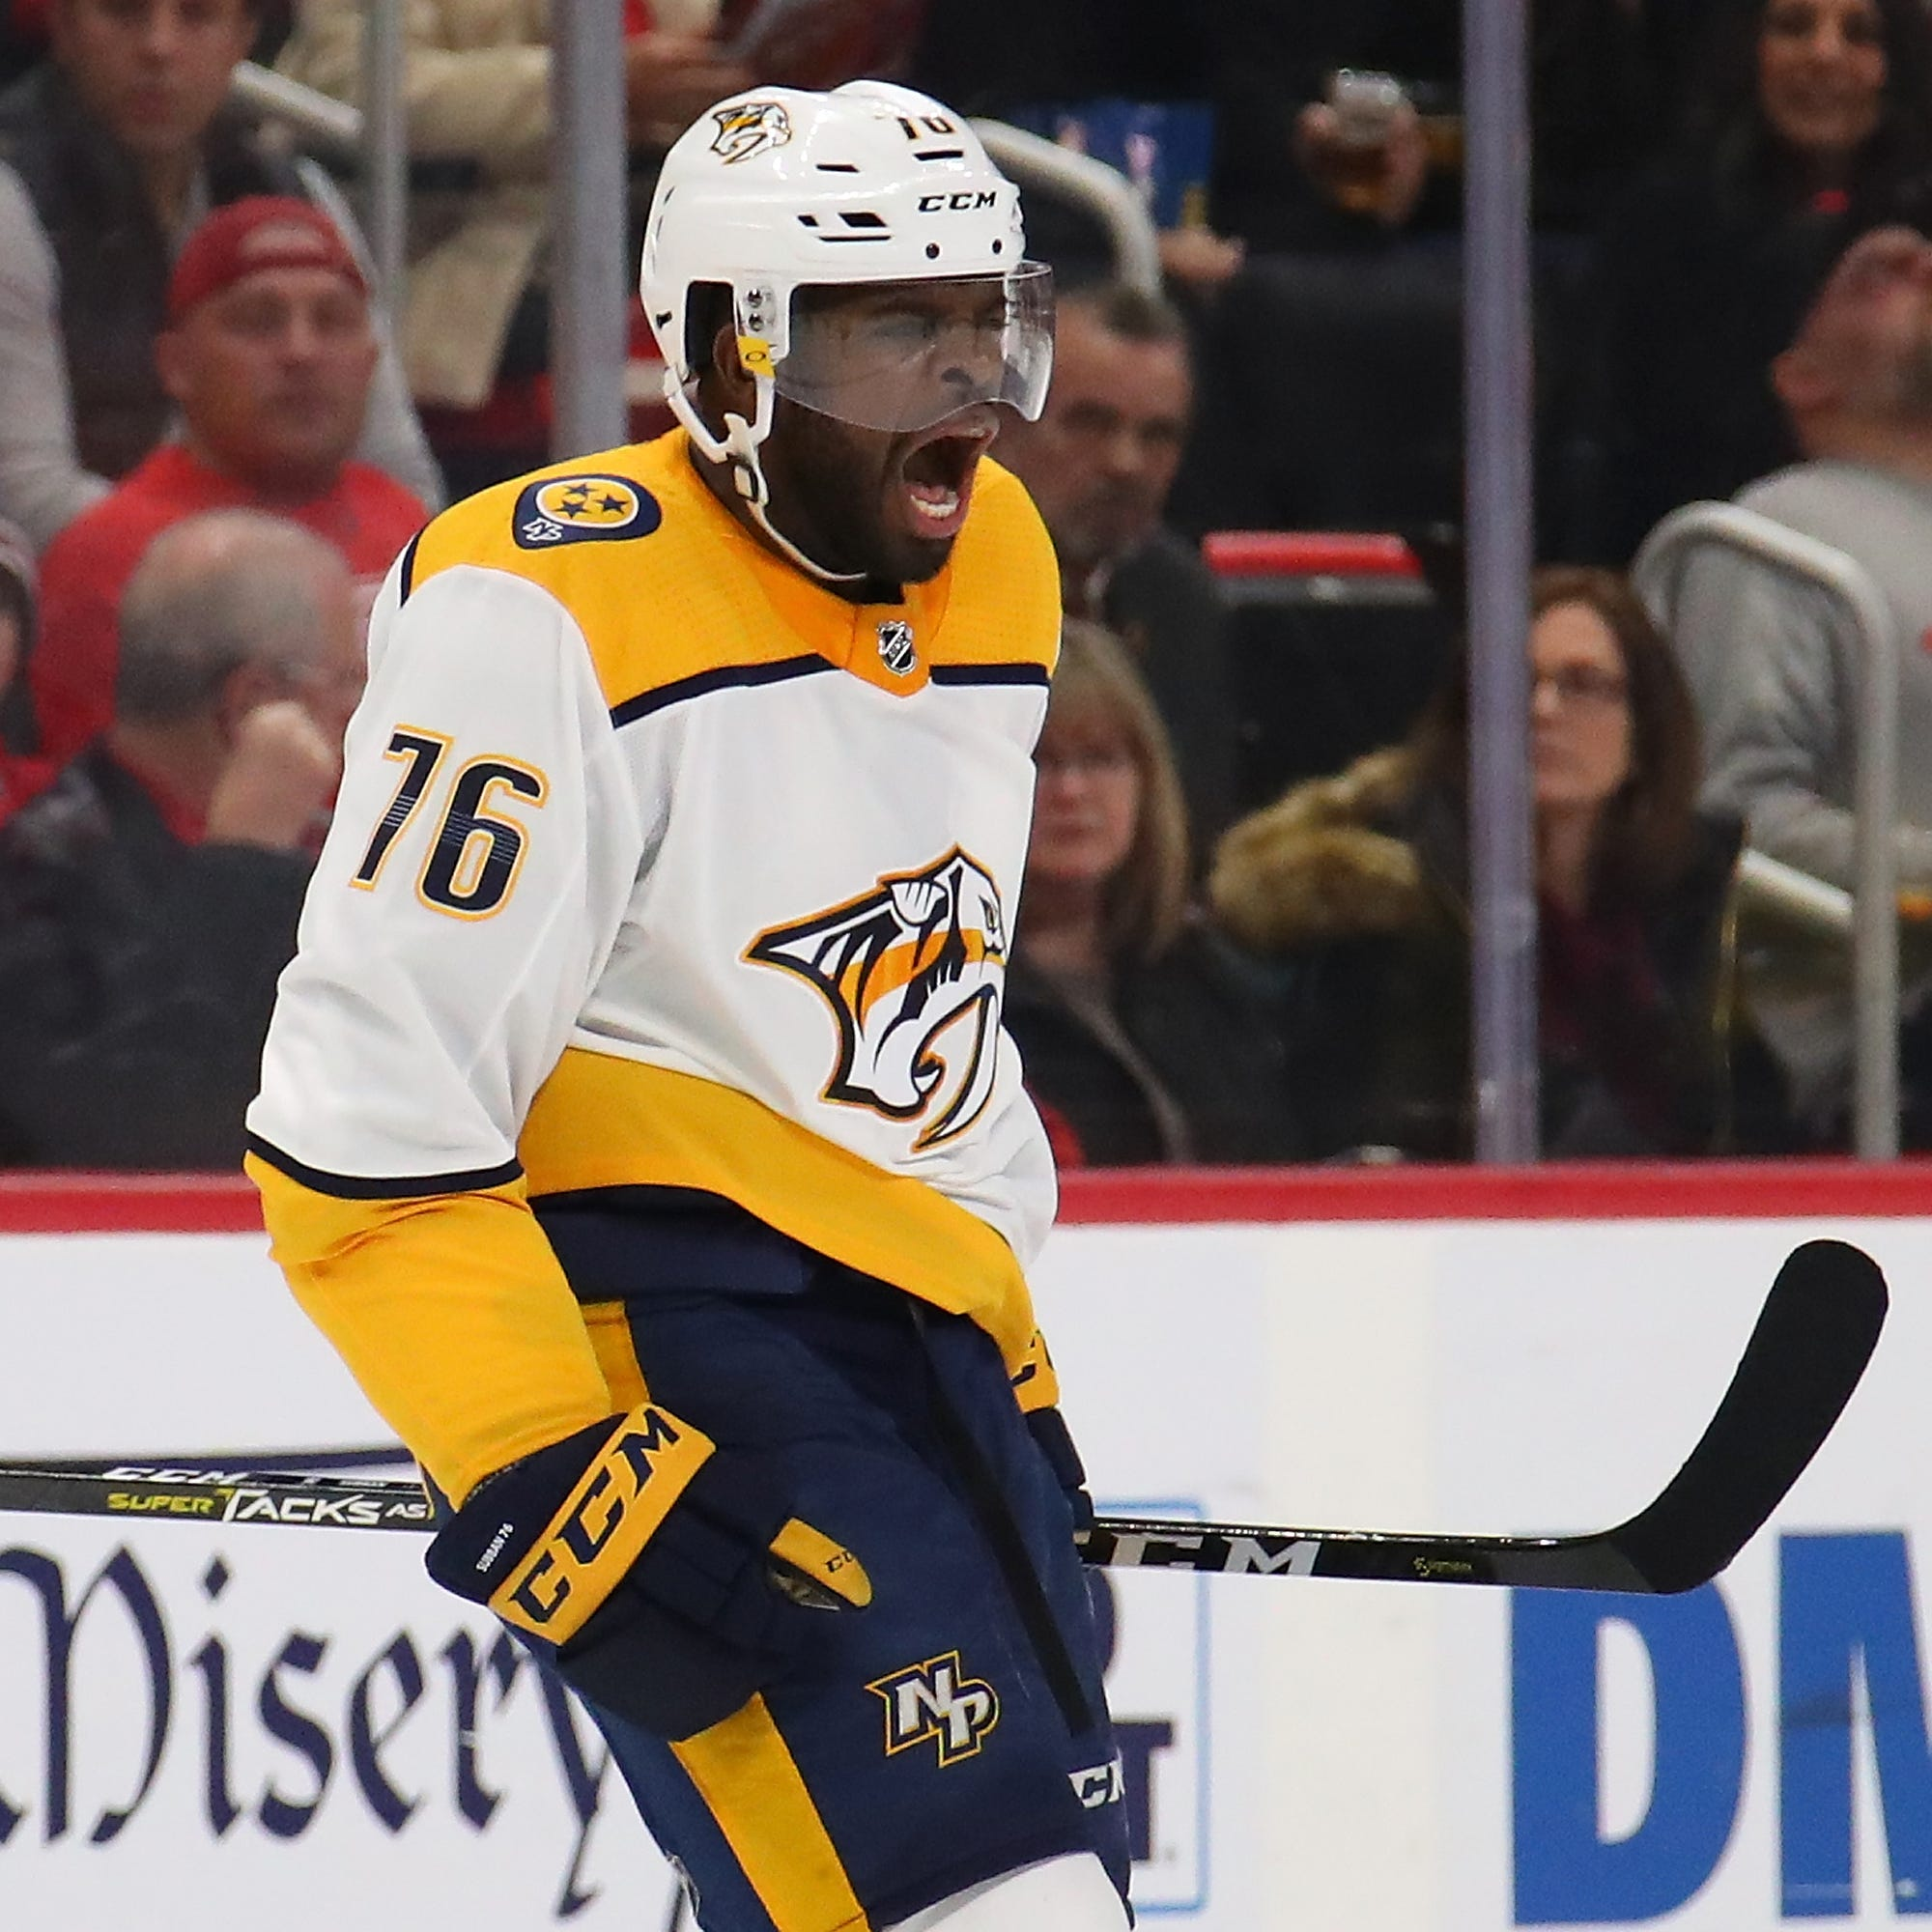 Predator star Subban inspires black youth player facing racial taunts